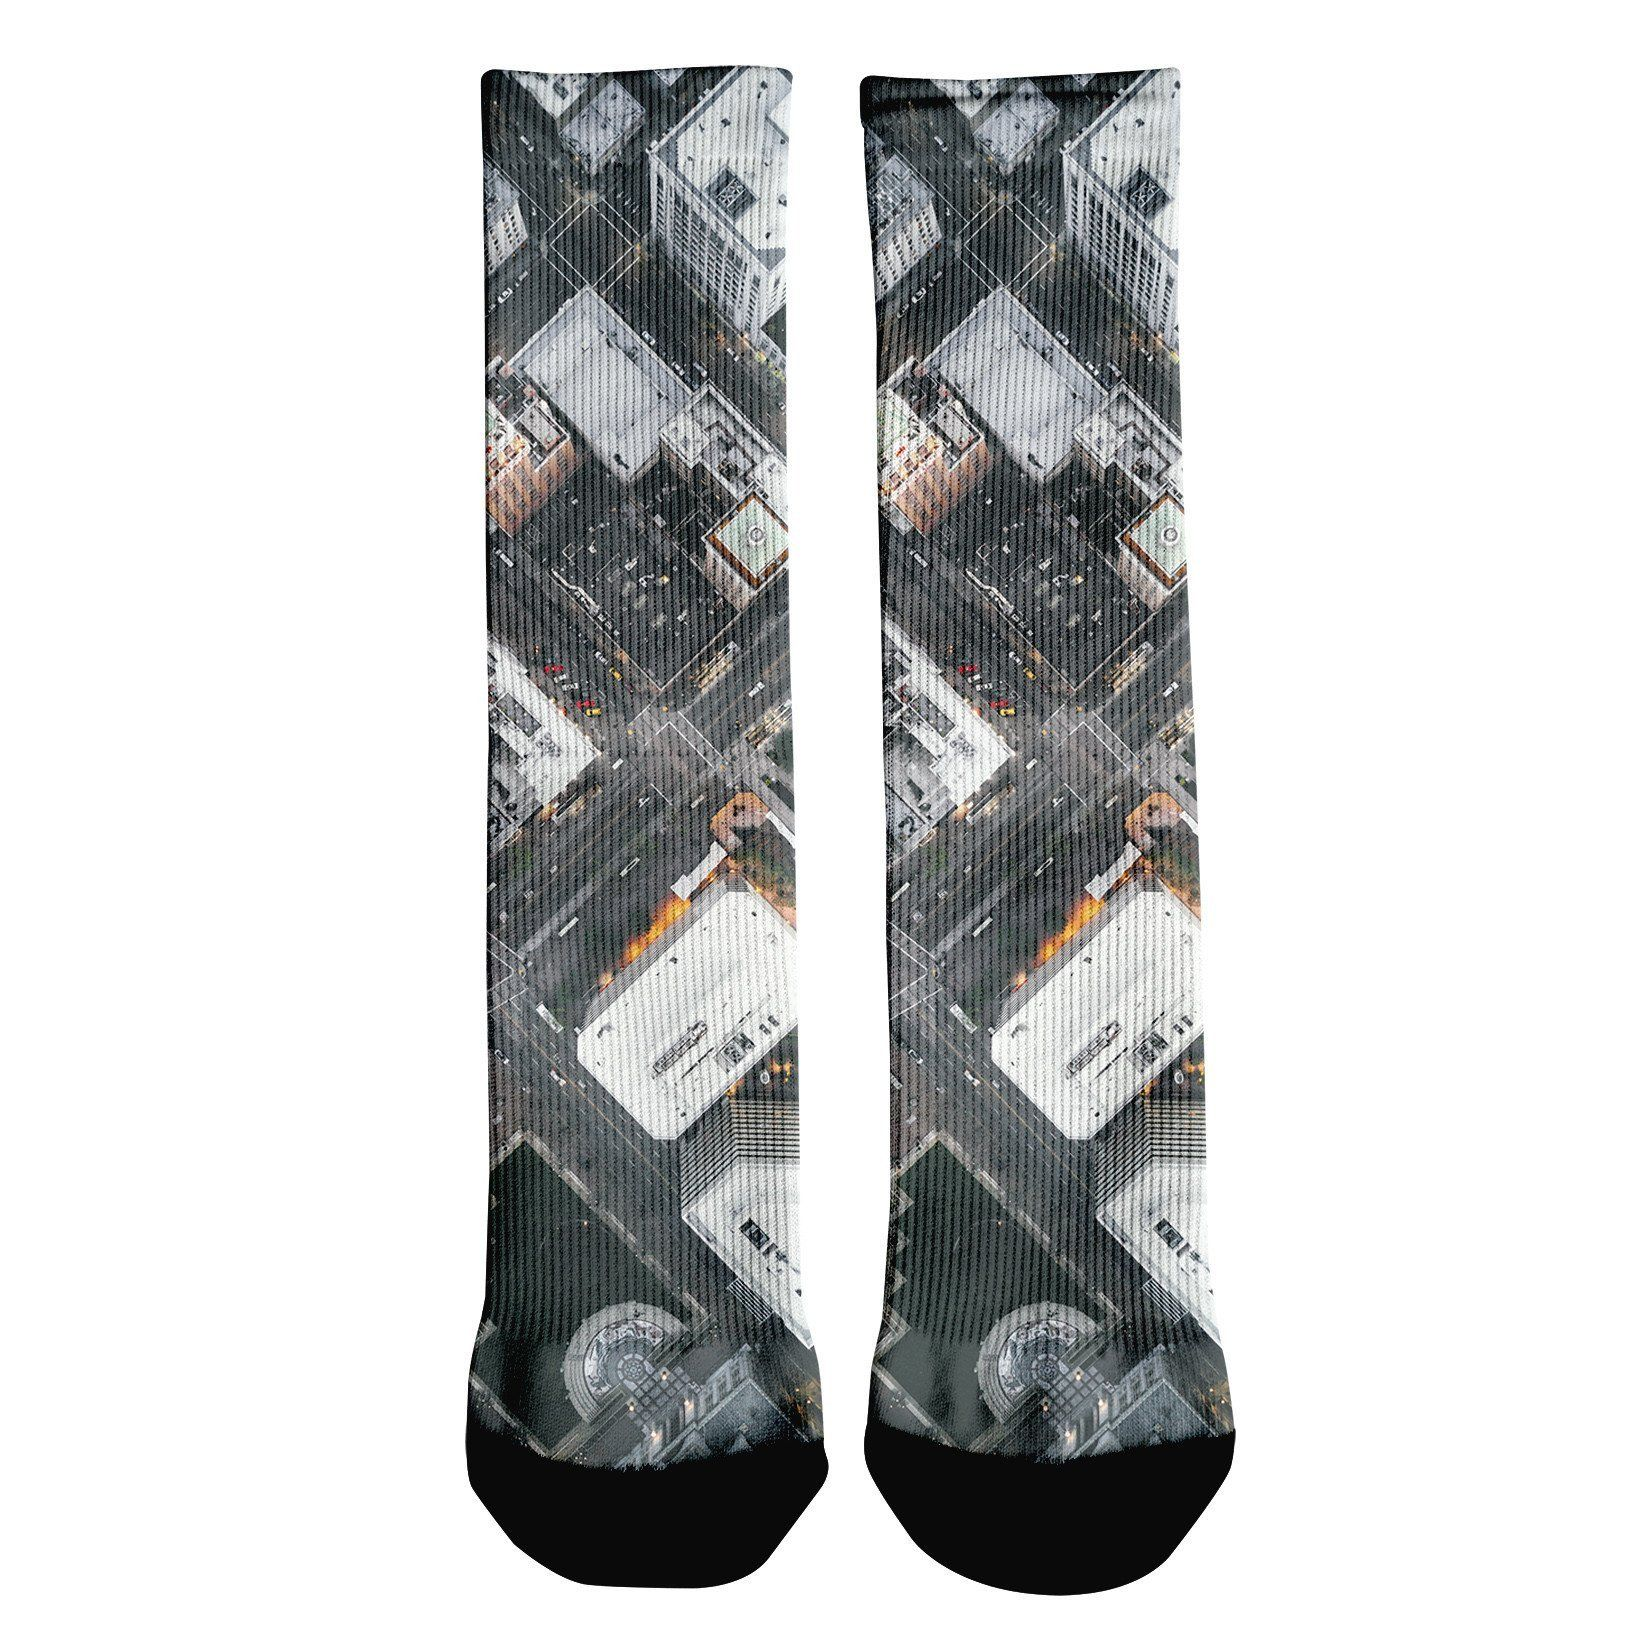 Oakland Streets From Above Crew Socks